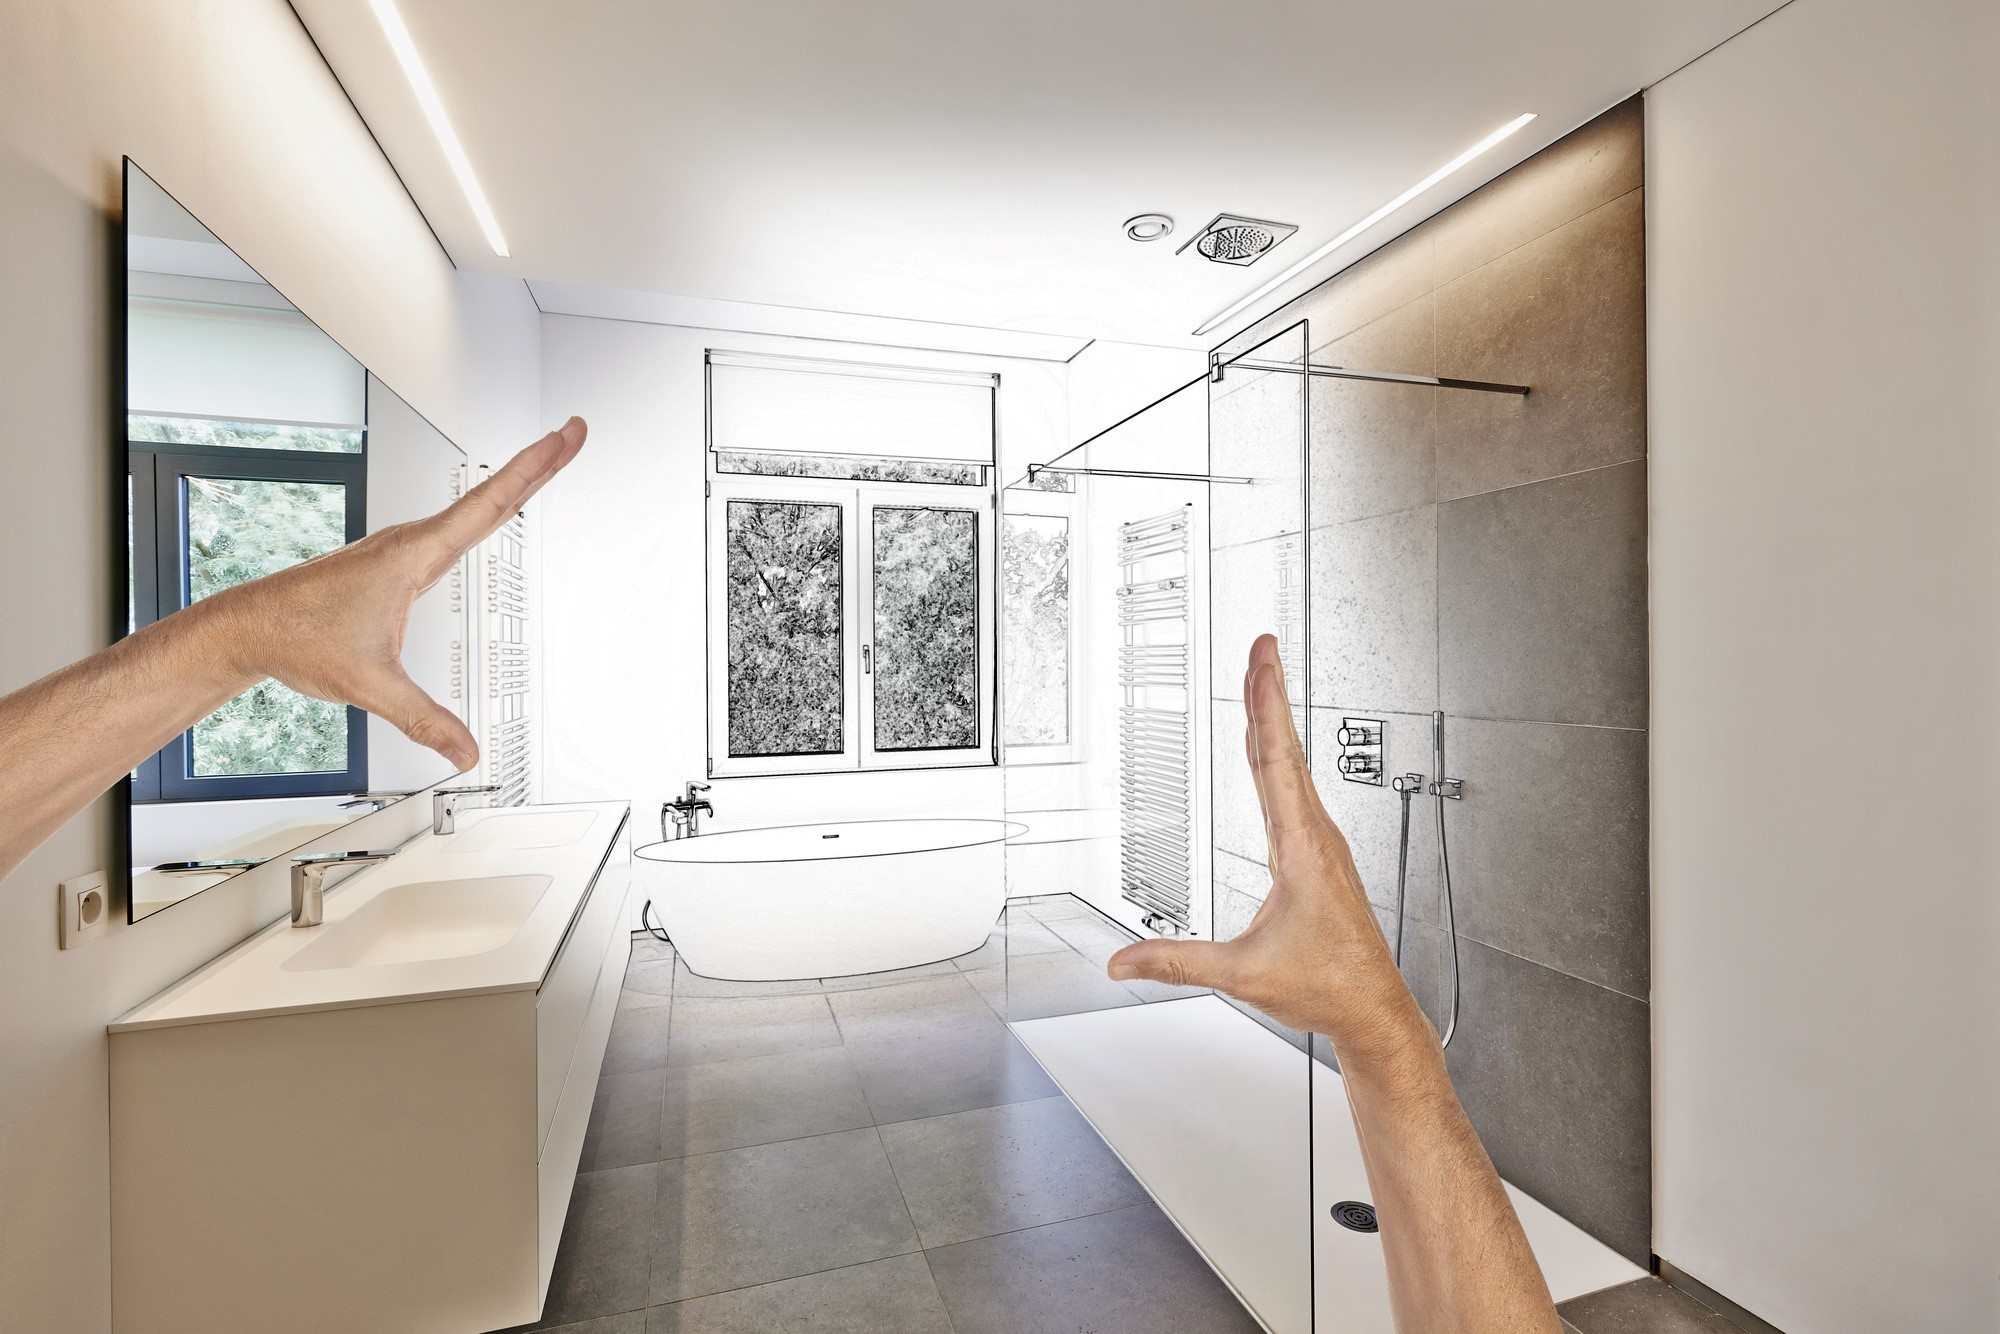 image - 5 Awesome Bathroom Design Ideas to Inspire Your Renovation